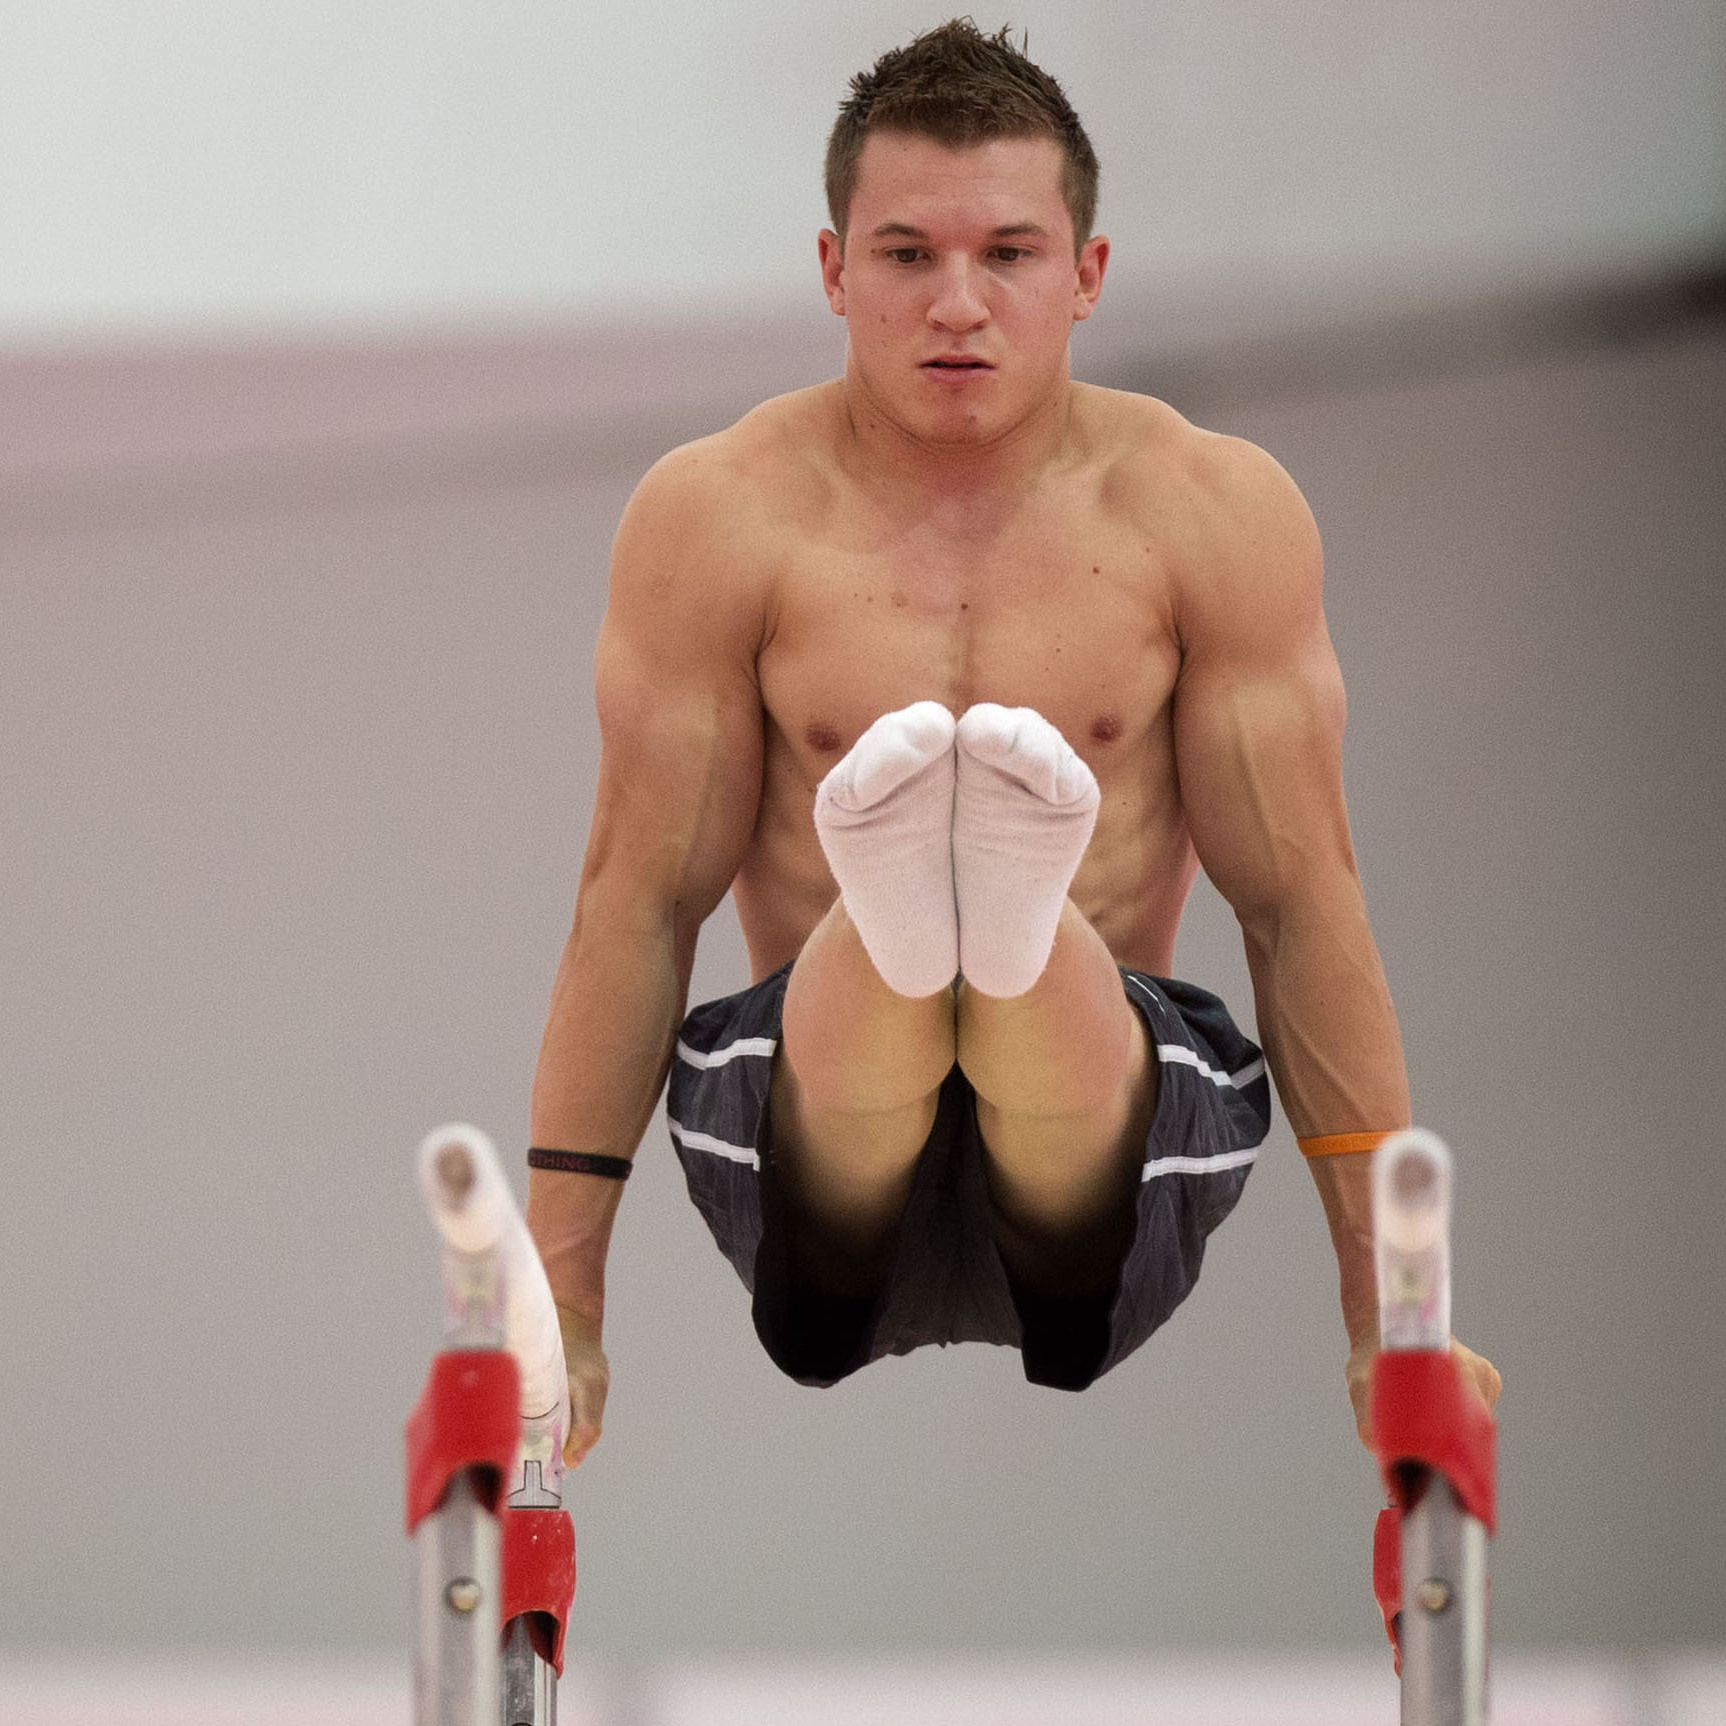 U.S. gymnast Jonathan Horton warming up on the parallel bars  in a practice arena ahead of the 2012 Summer Olympics.